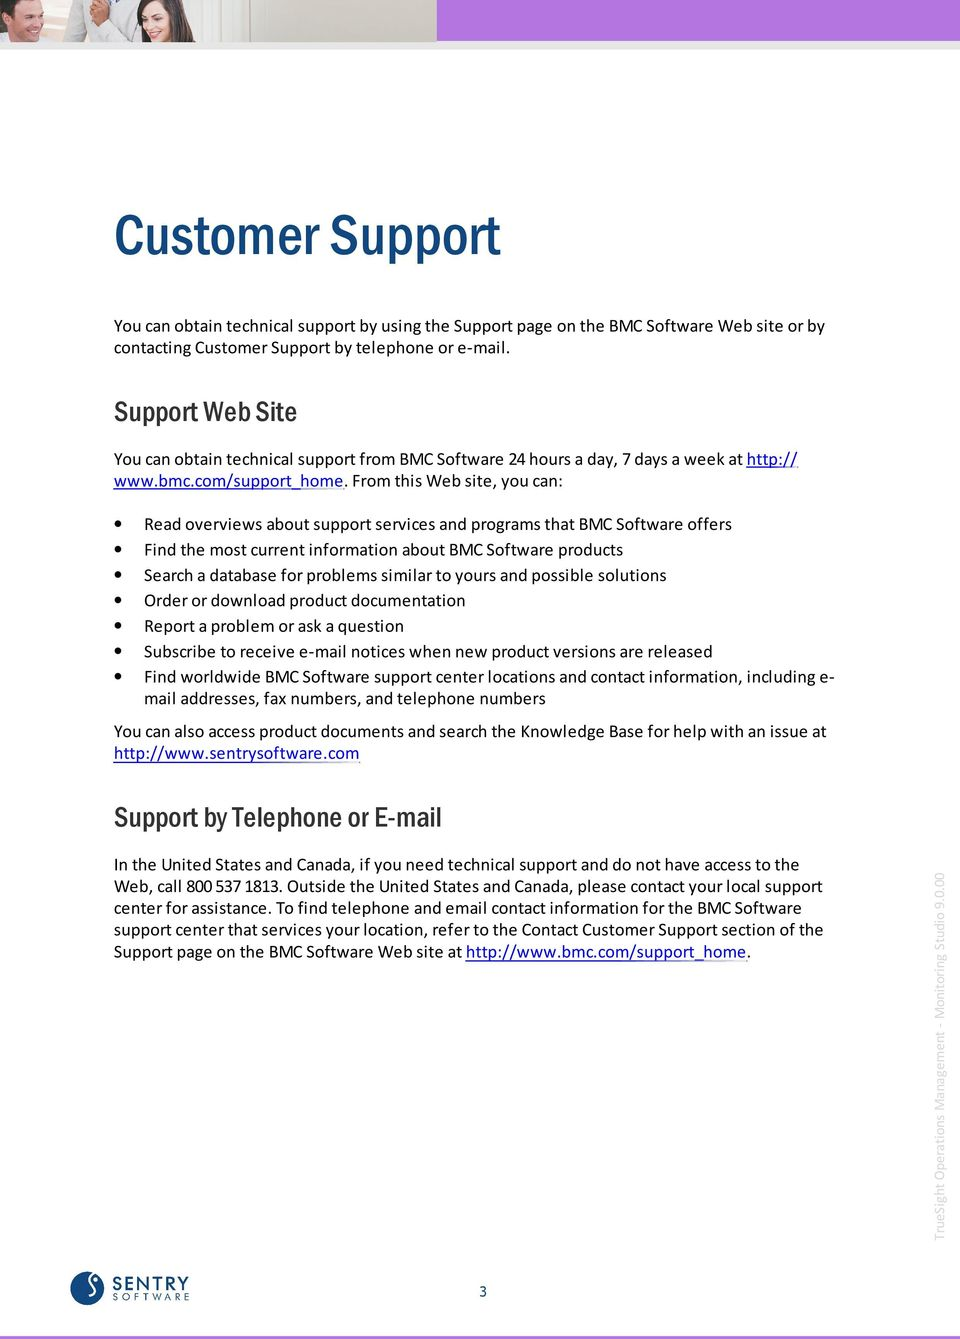 From this Web site, you can: Read overviews about support services and programs that BMC Software offers Find the most current information about BMC Software products Search a database for problems